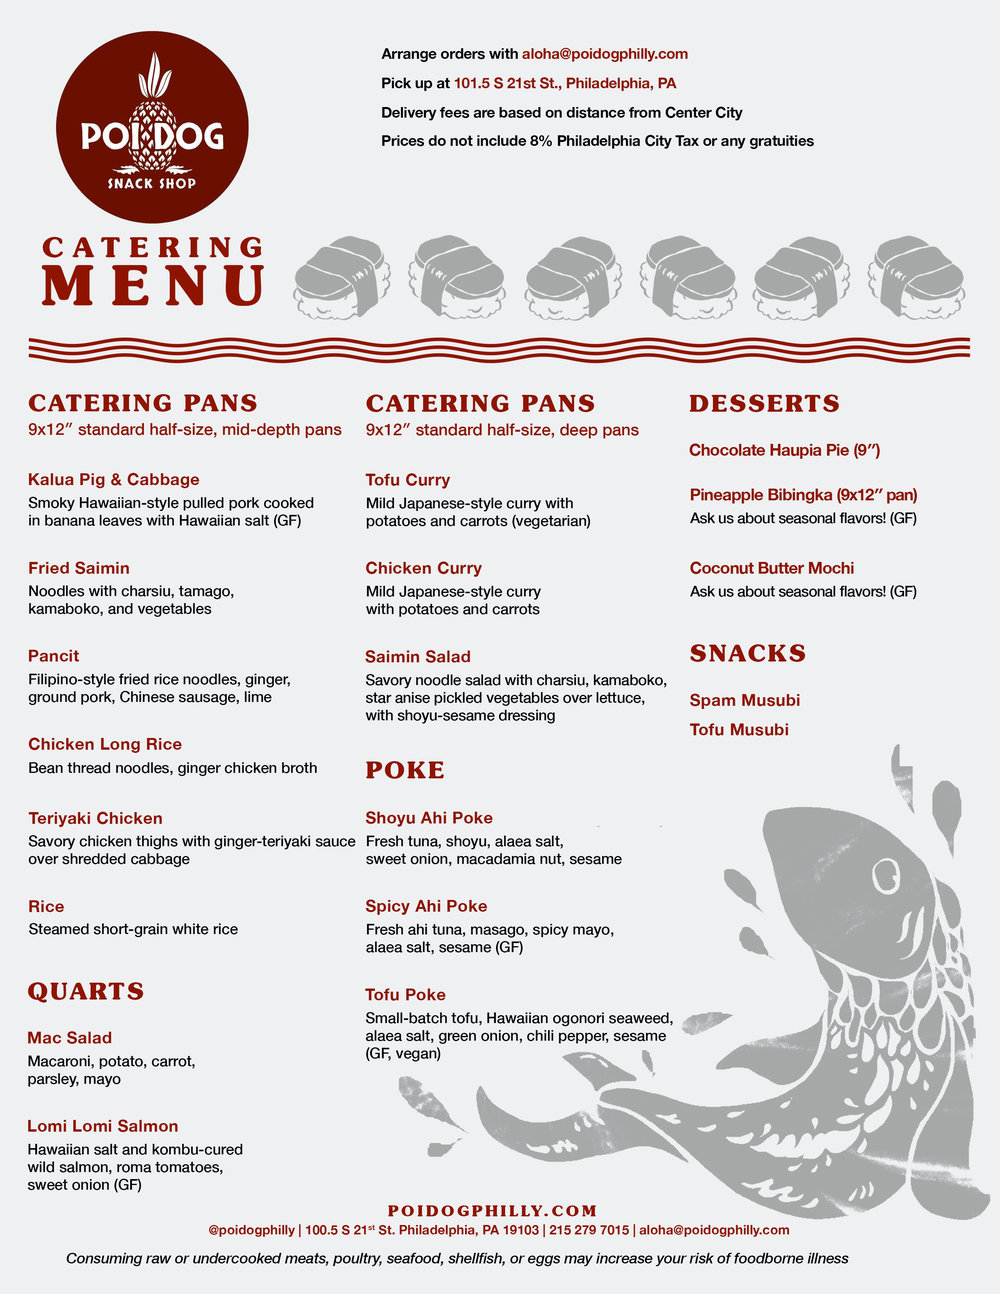 pan catering menu v2.jpg